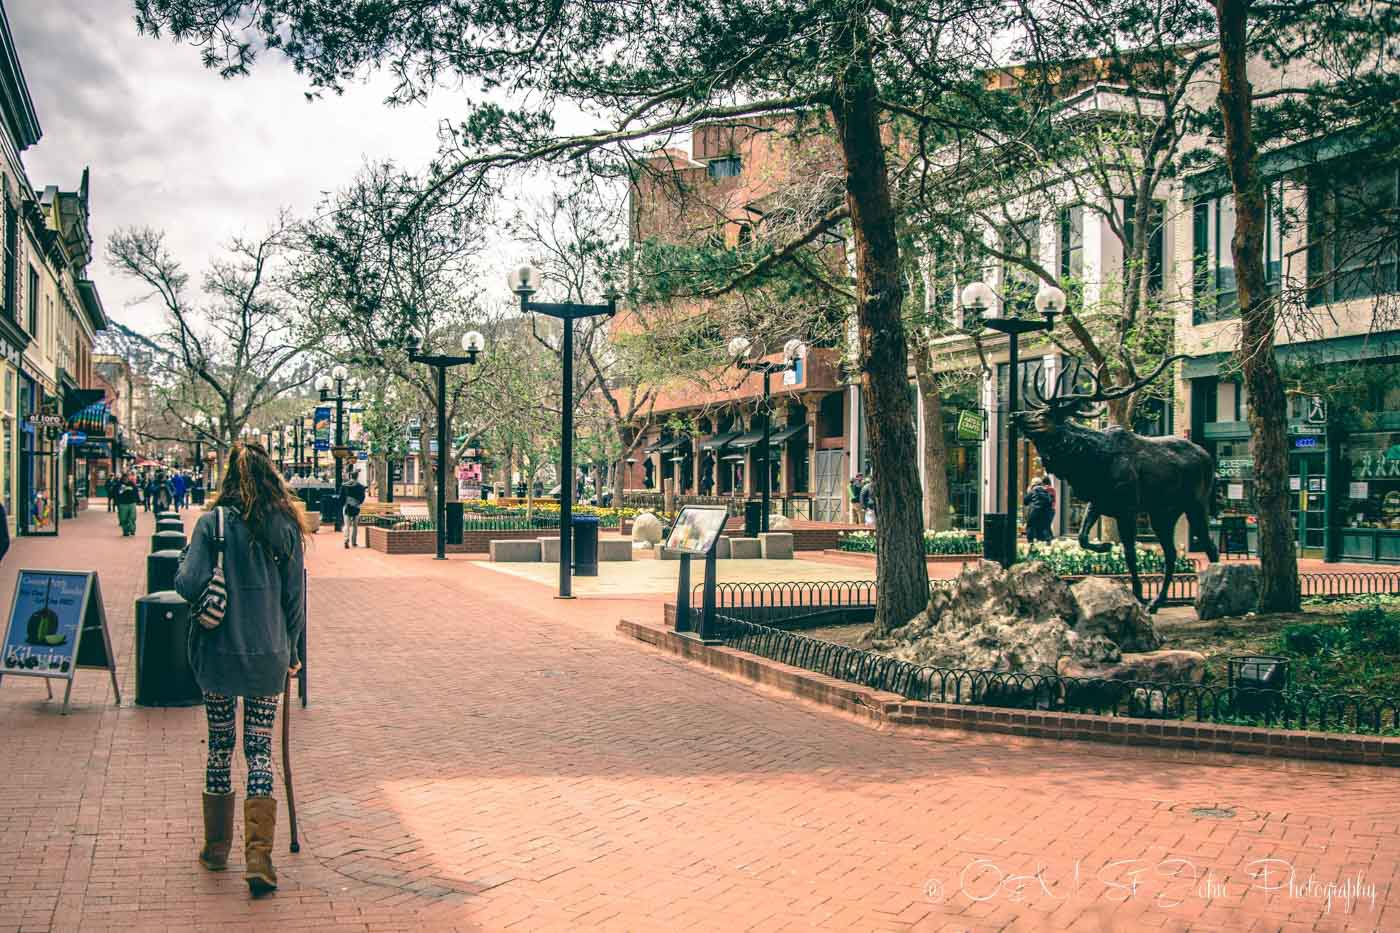 Travel across america by car stop: Pearl Street Mall in Boulder, Colorado